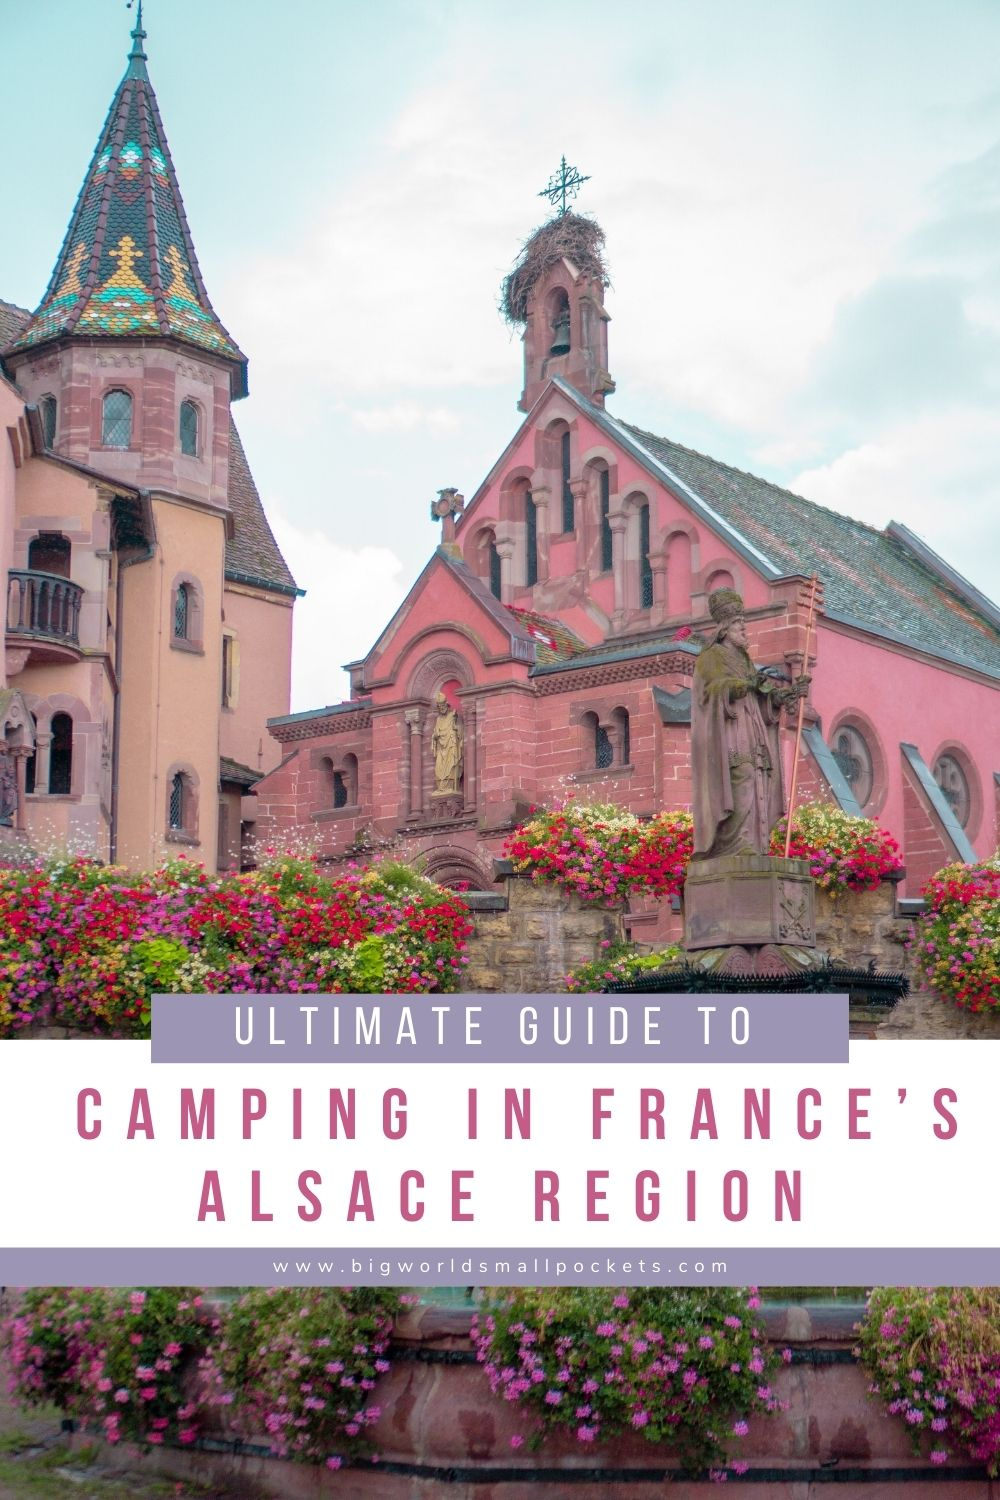 Complete Guide to Camping in France's Alsace Region